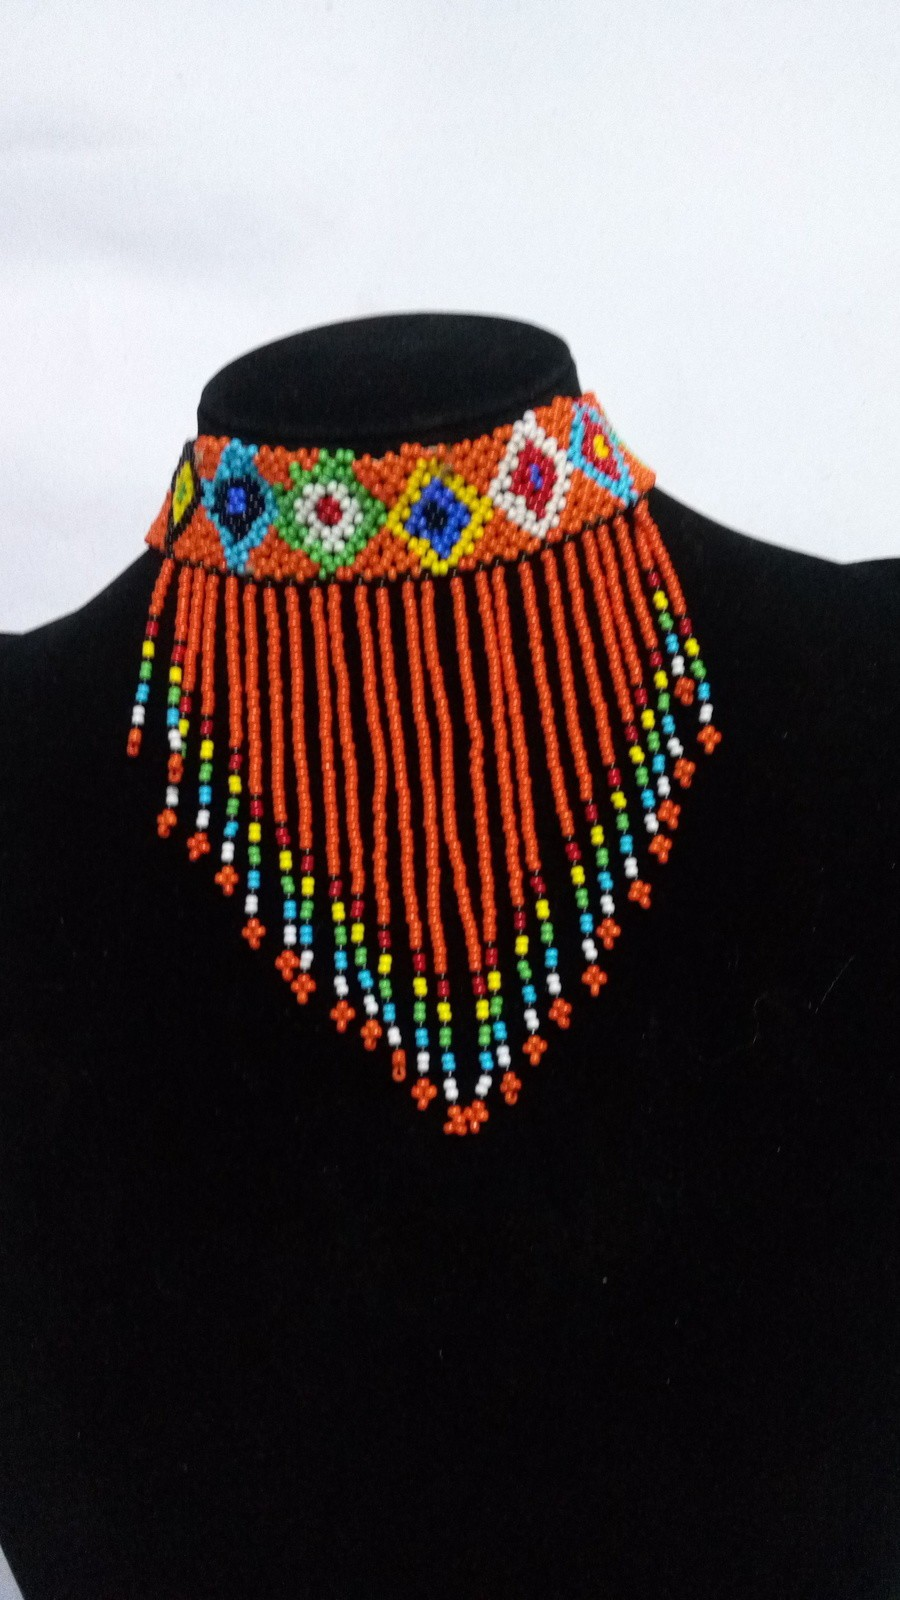 Seed Bead Necklace African-like Necklace. Nut and Bead Necklace